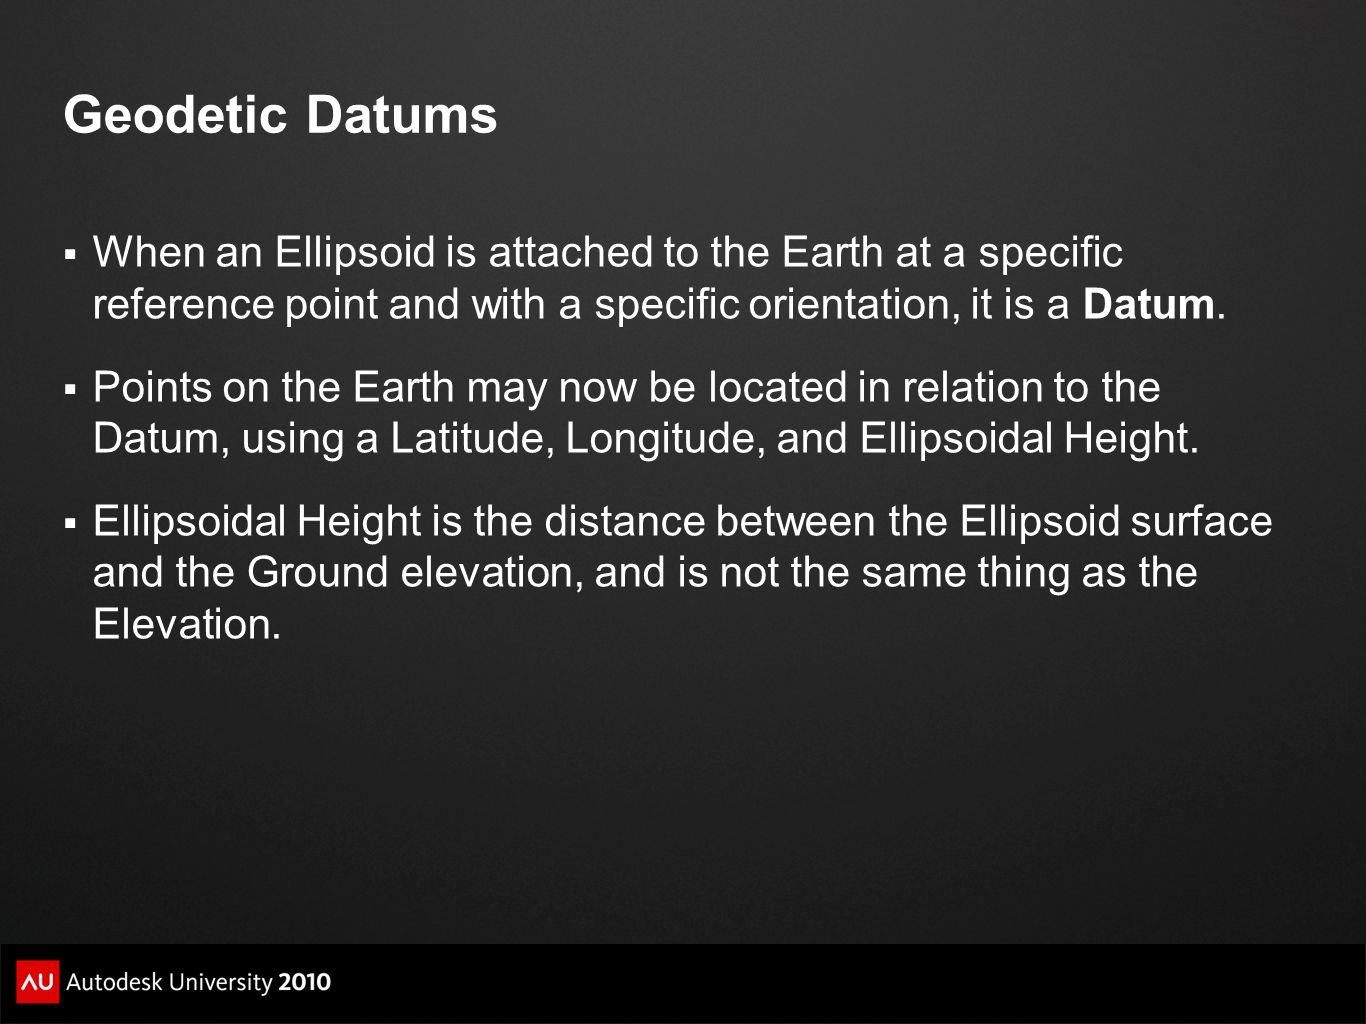 Geodetic Datums When an Ellipsoid is attached to the Earth at a specific reference point and with a specific orientation, it is a Datum.